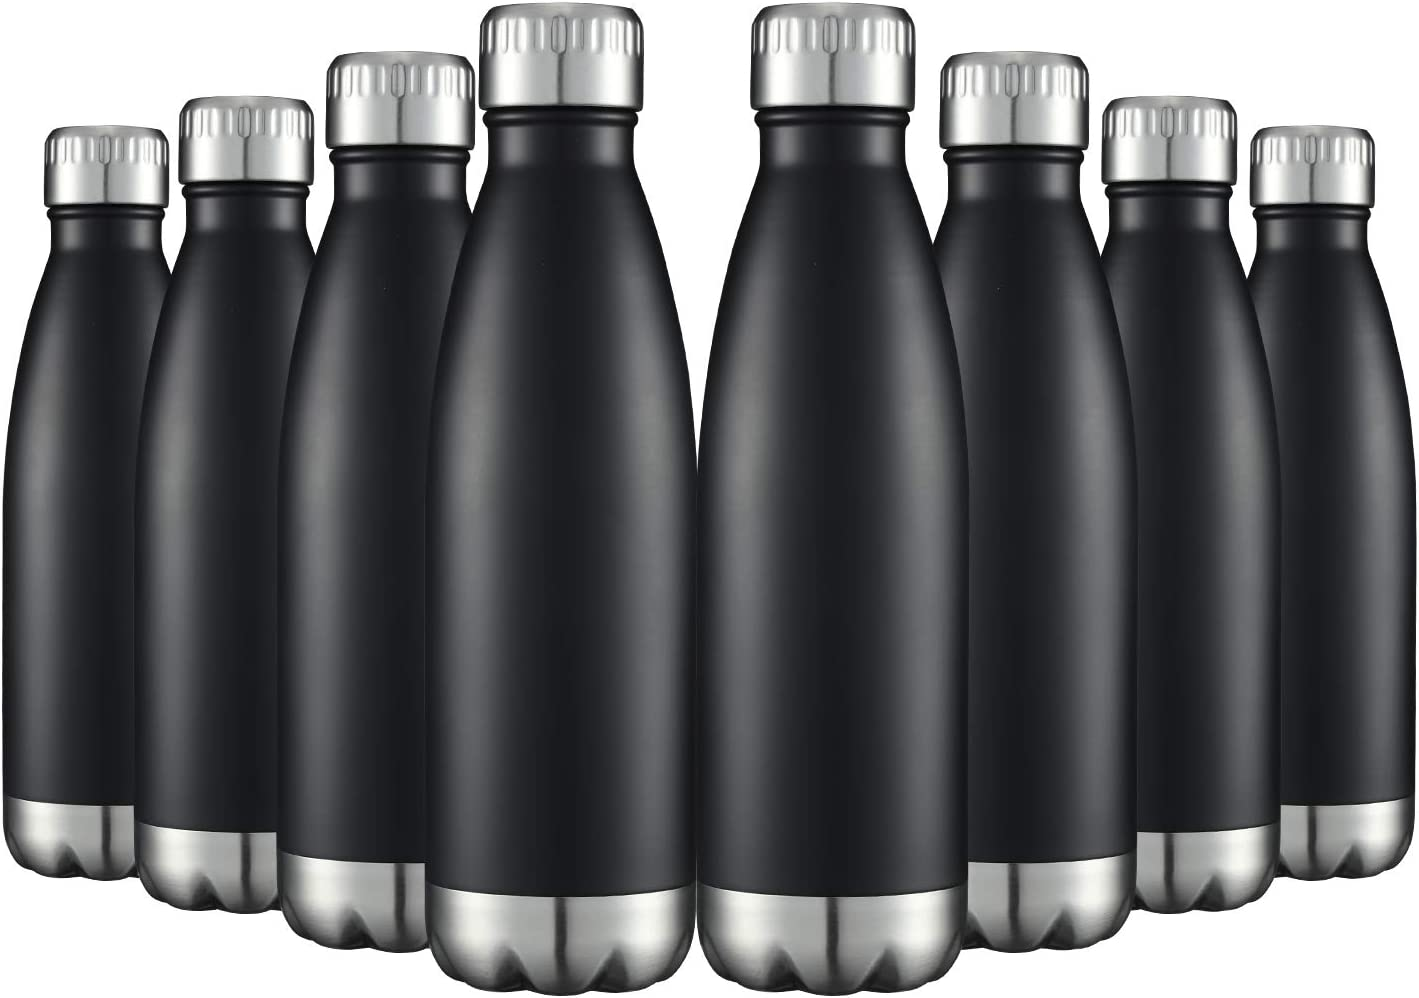 Water Bottles 8 Packs in Bulk Stainless Steel 17oz, Insulated Double Walled Vacuum Sports Fitness Hot Cold Reusable Beach Thermoses, Cola Shape Travel Metal Flask Leak Proof Gifts for Cycling Black